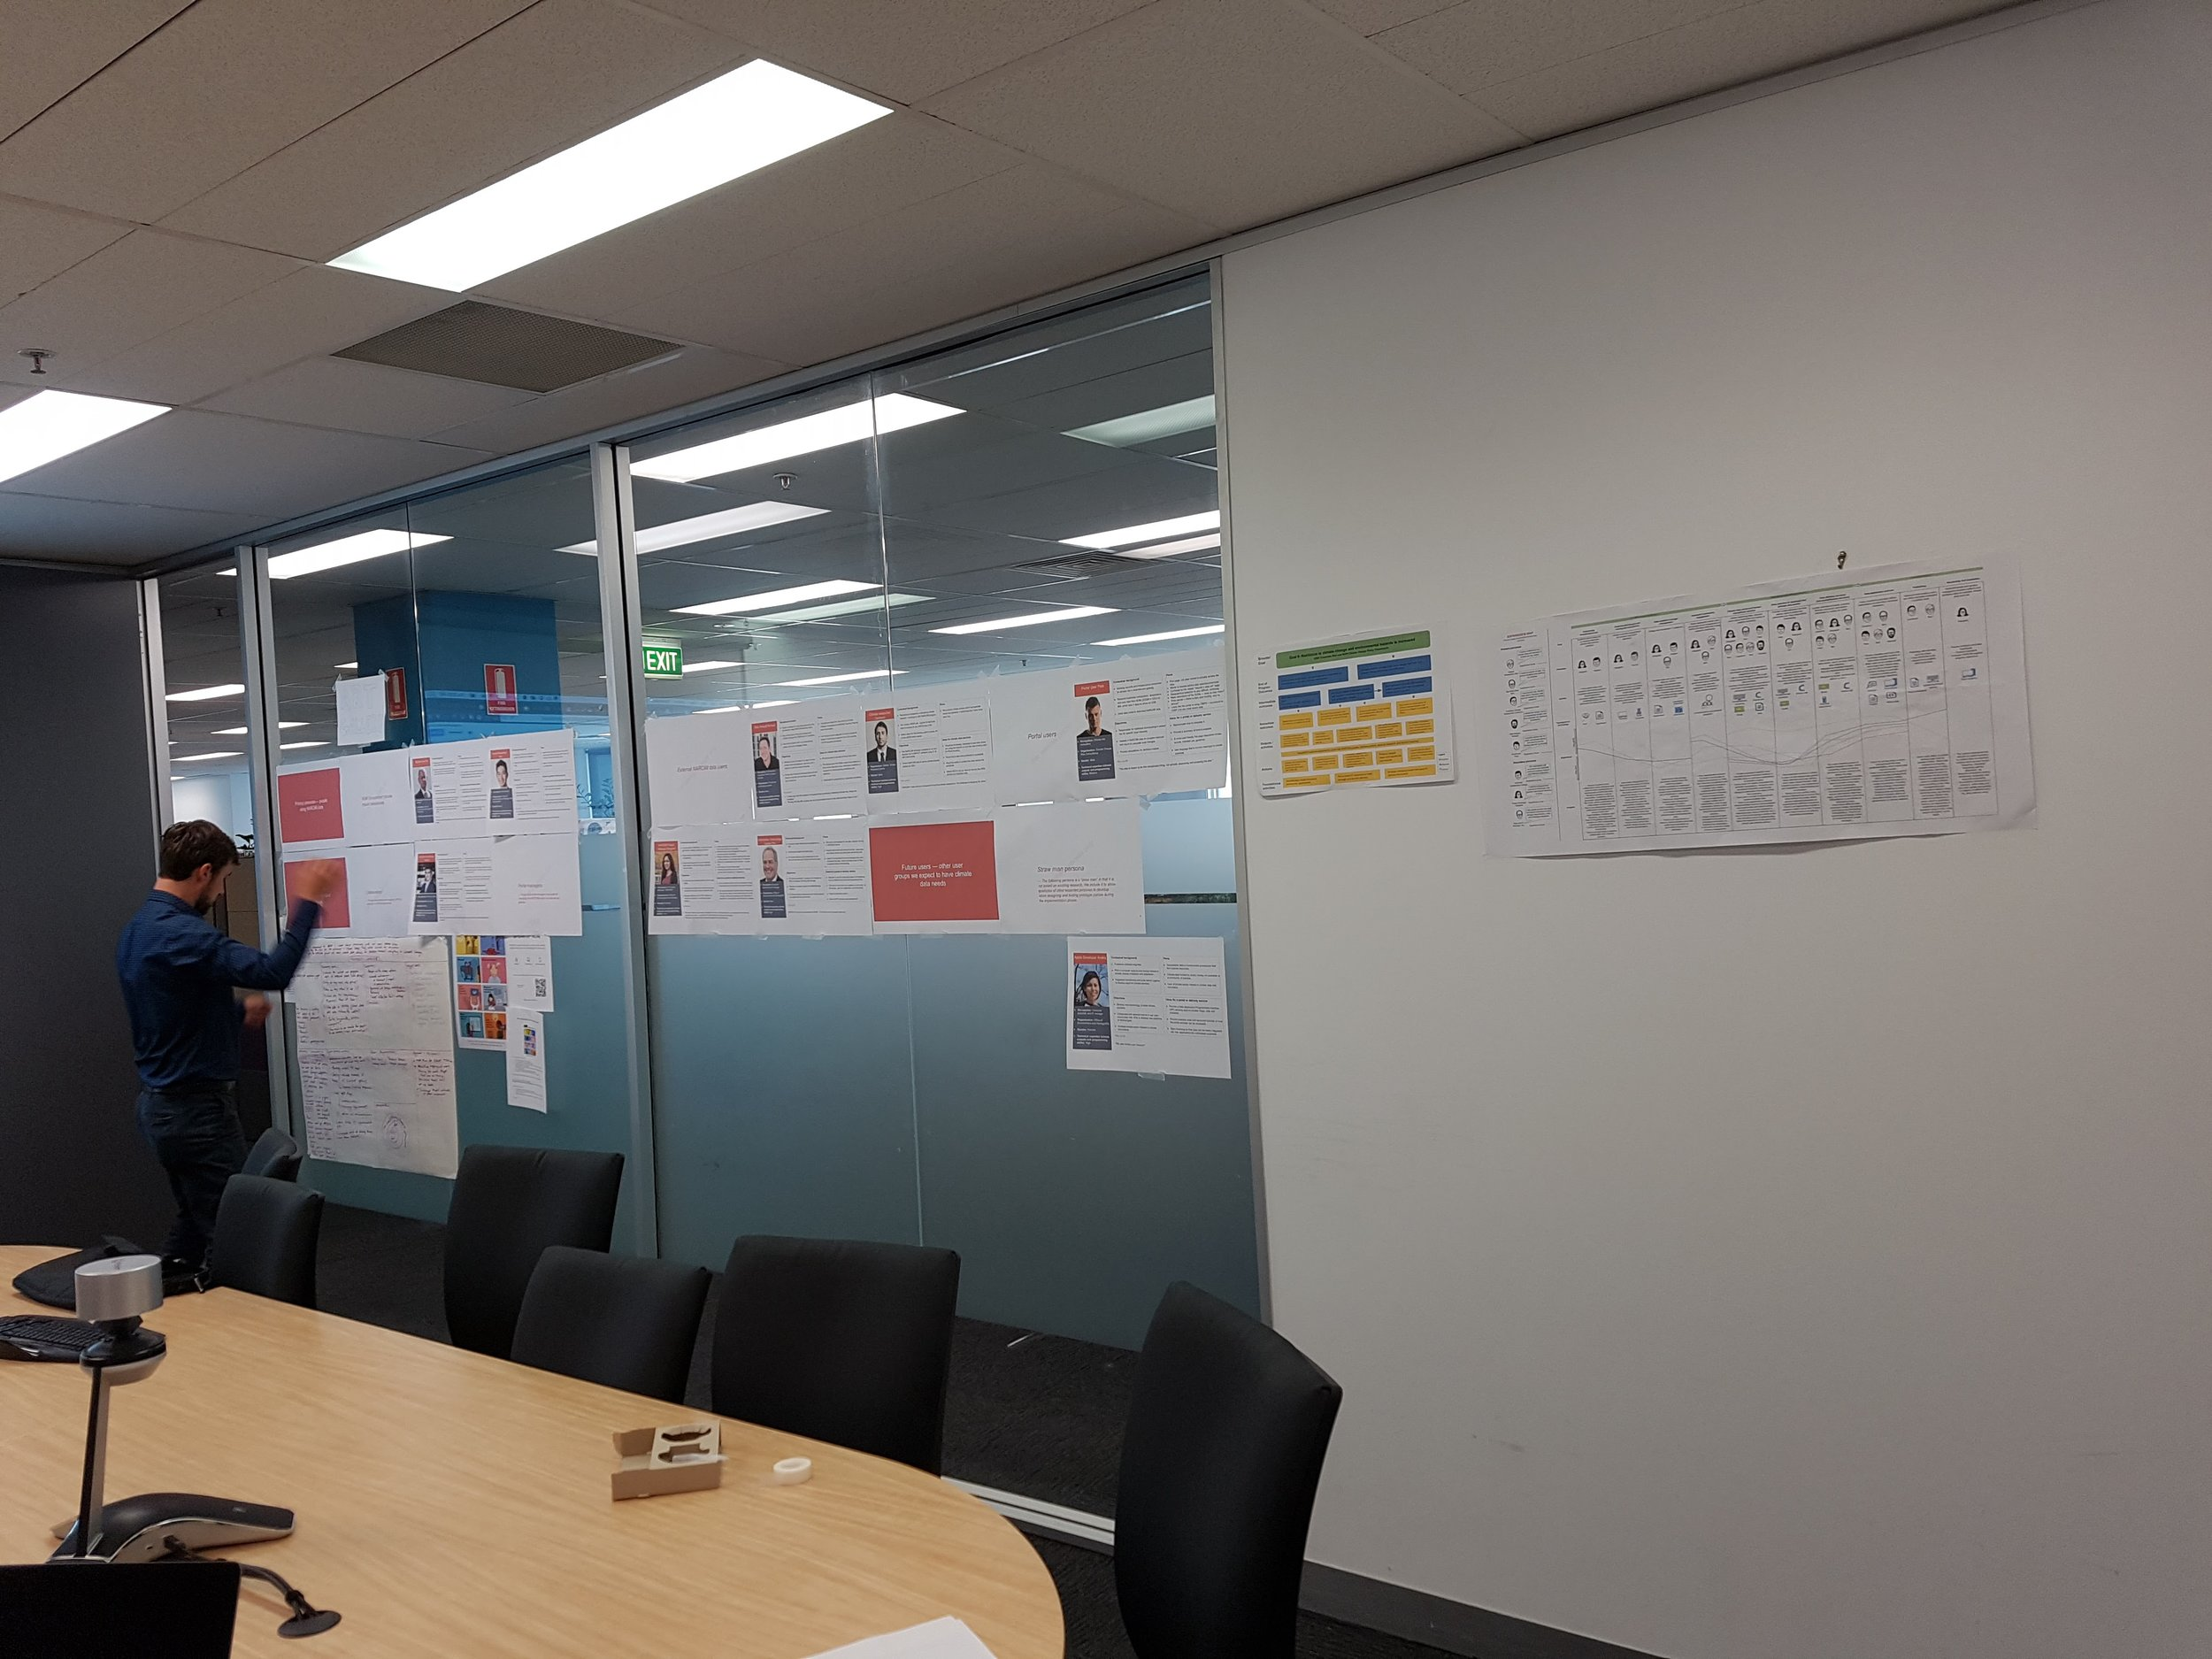 Produced a gallery of research outputs, such as Personas, Experience Map, strategic objectives and insights to co-create our Design Criteria for the portal.